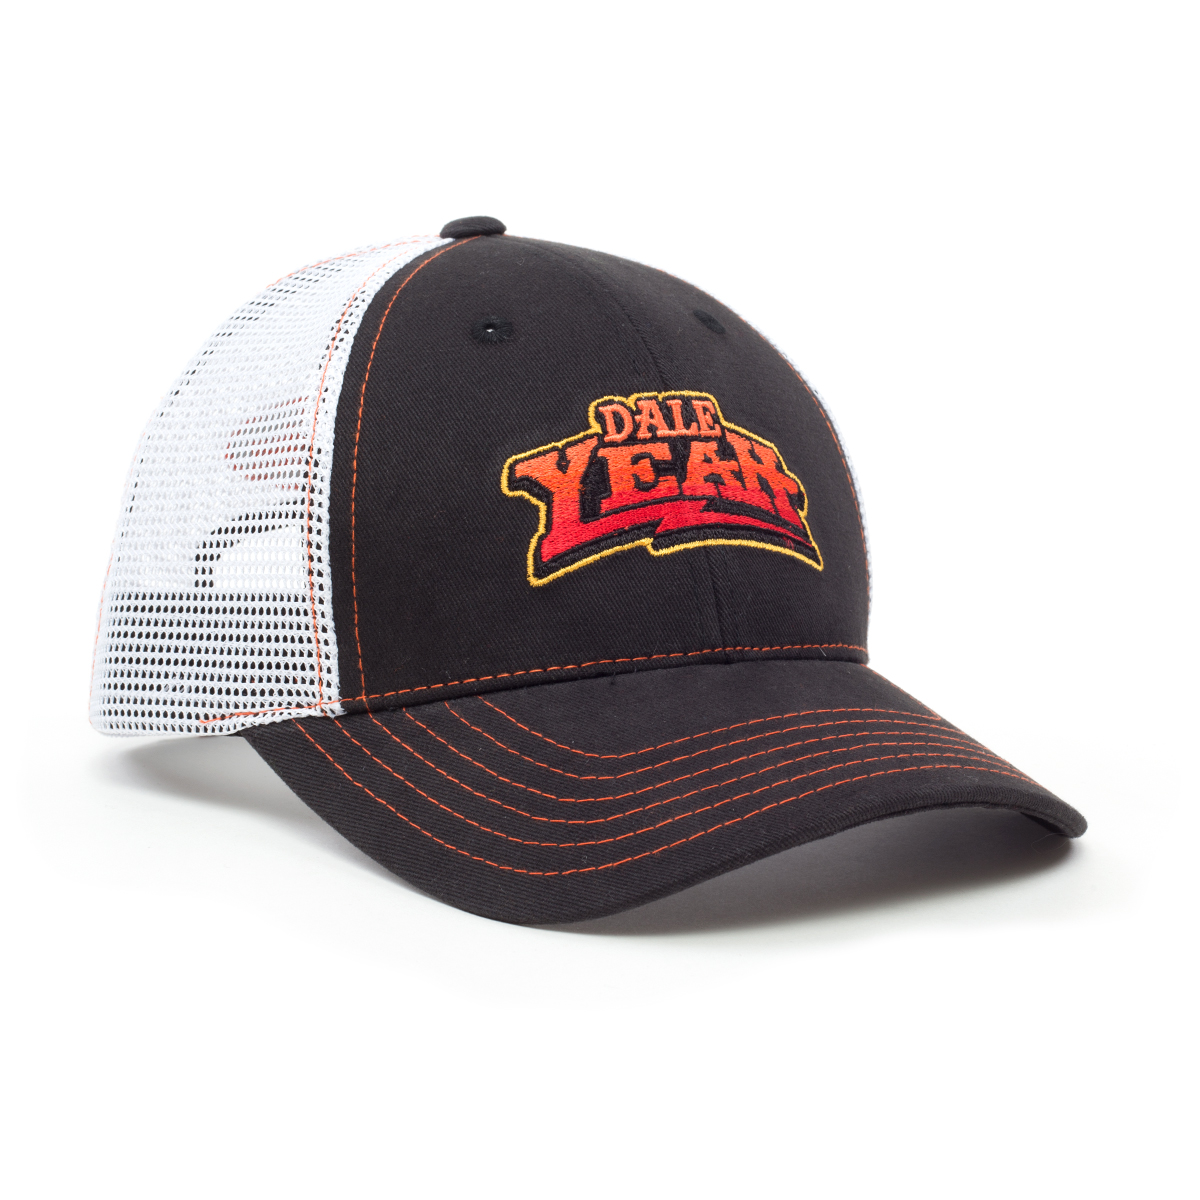 JR Nation 2018 Dale Yeah Hat